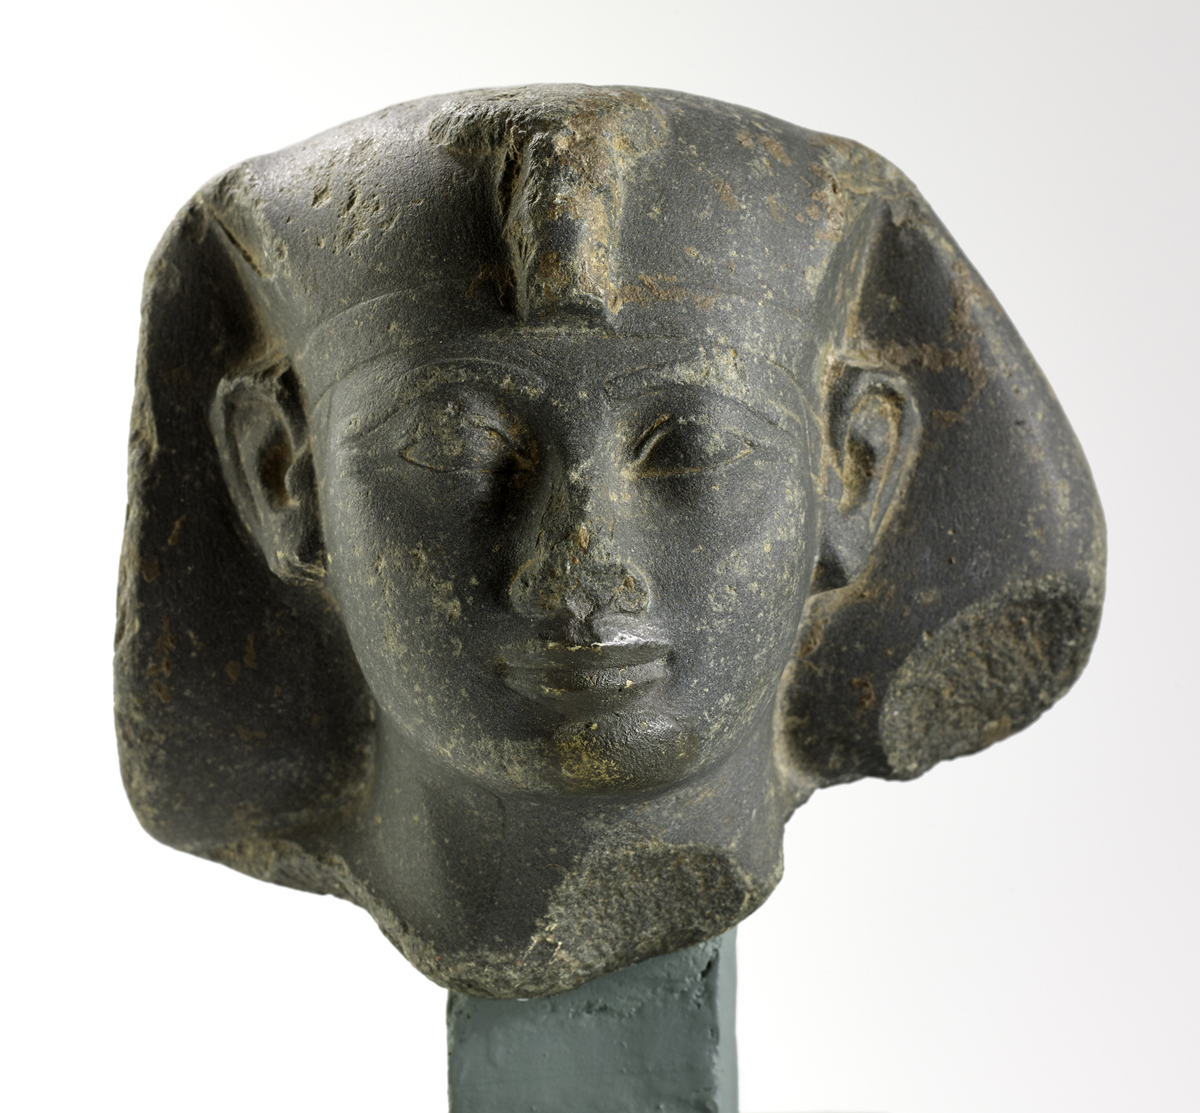 A.1951.346 - Statue head in fine green arkose of a king wearing the afnet headdress with uraeus, possibly Amenhotep II: Ancient Egyptian, 18th Dynasty.